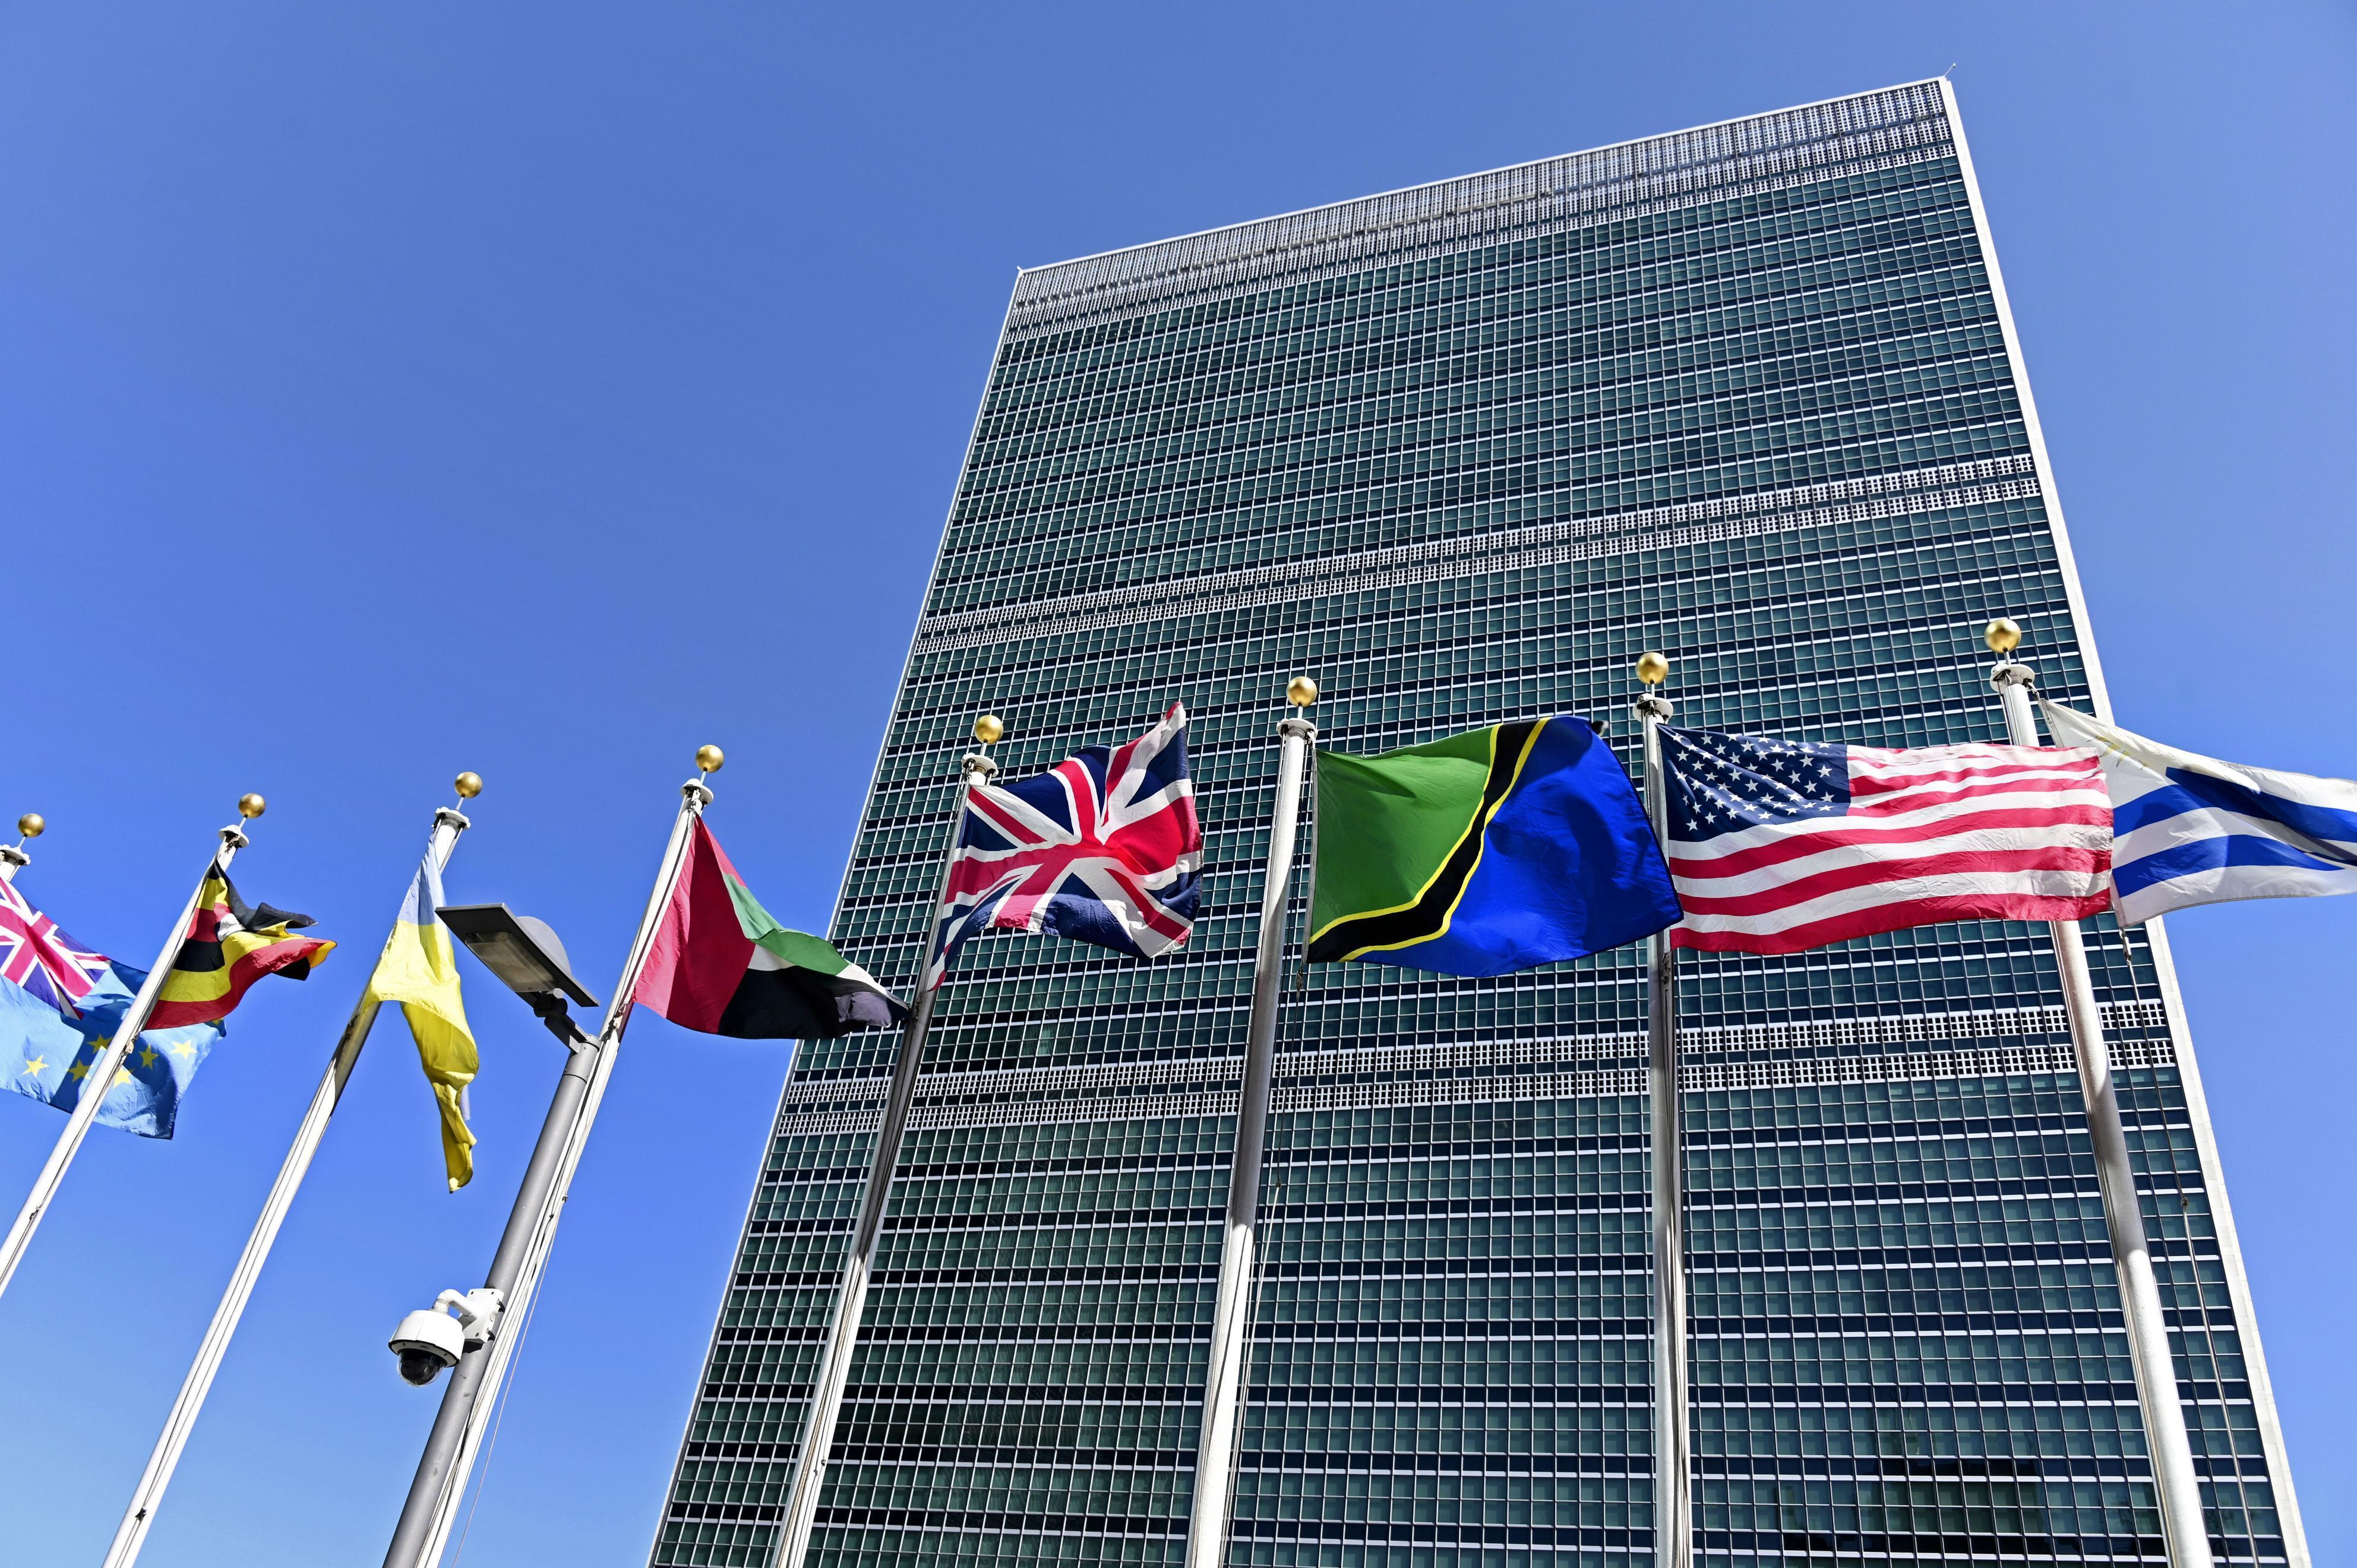 National flags fly at the United Nations headquarters in New York on April 6, 2021. (Kyodo)==KyodoNO USE JAPAN